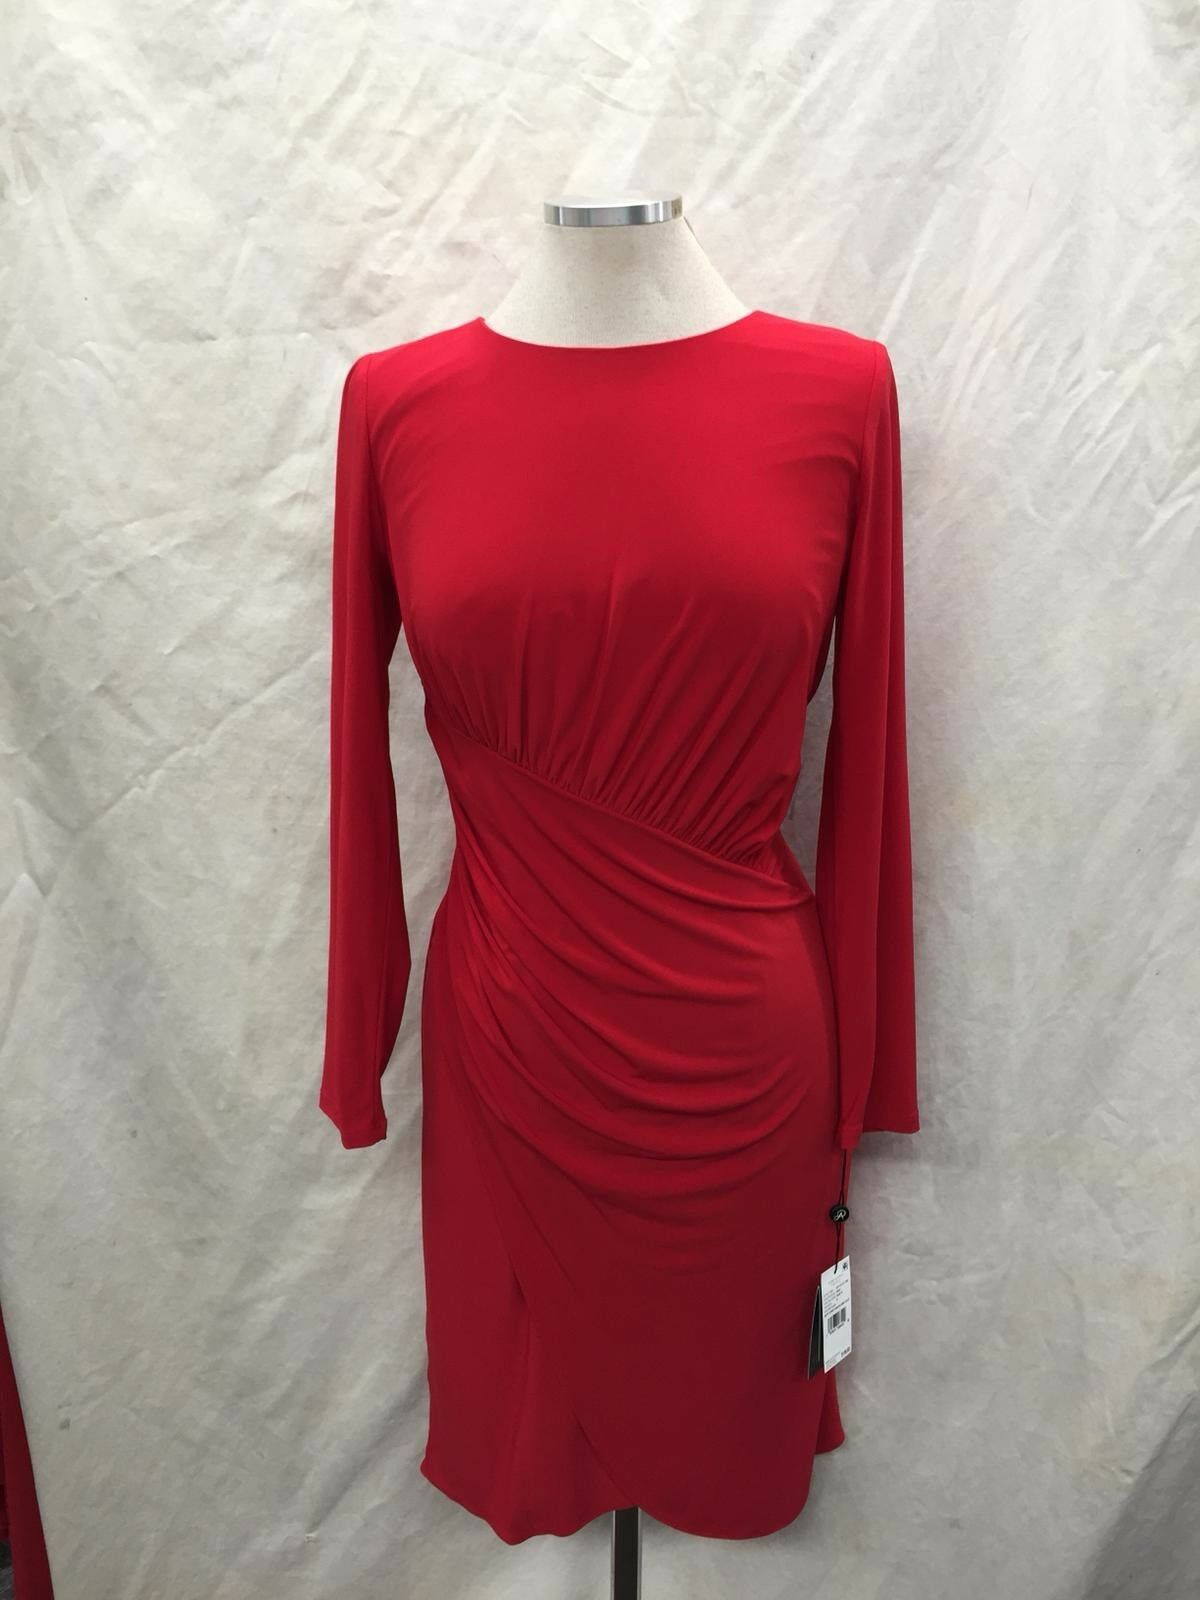 ADRIANNA PAPELL DRESS RED JERSEY STRETCH FABRIC NEW WITH TAG SIZE 10 RETAIL 129